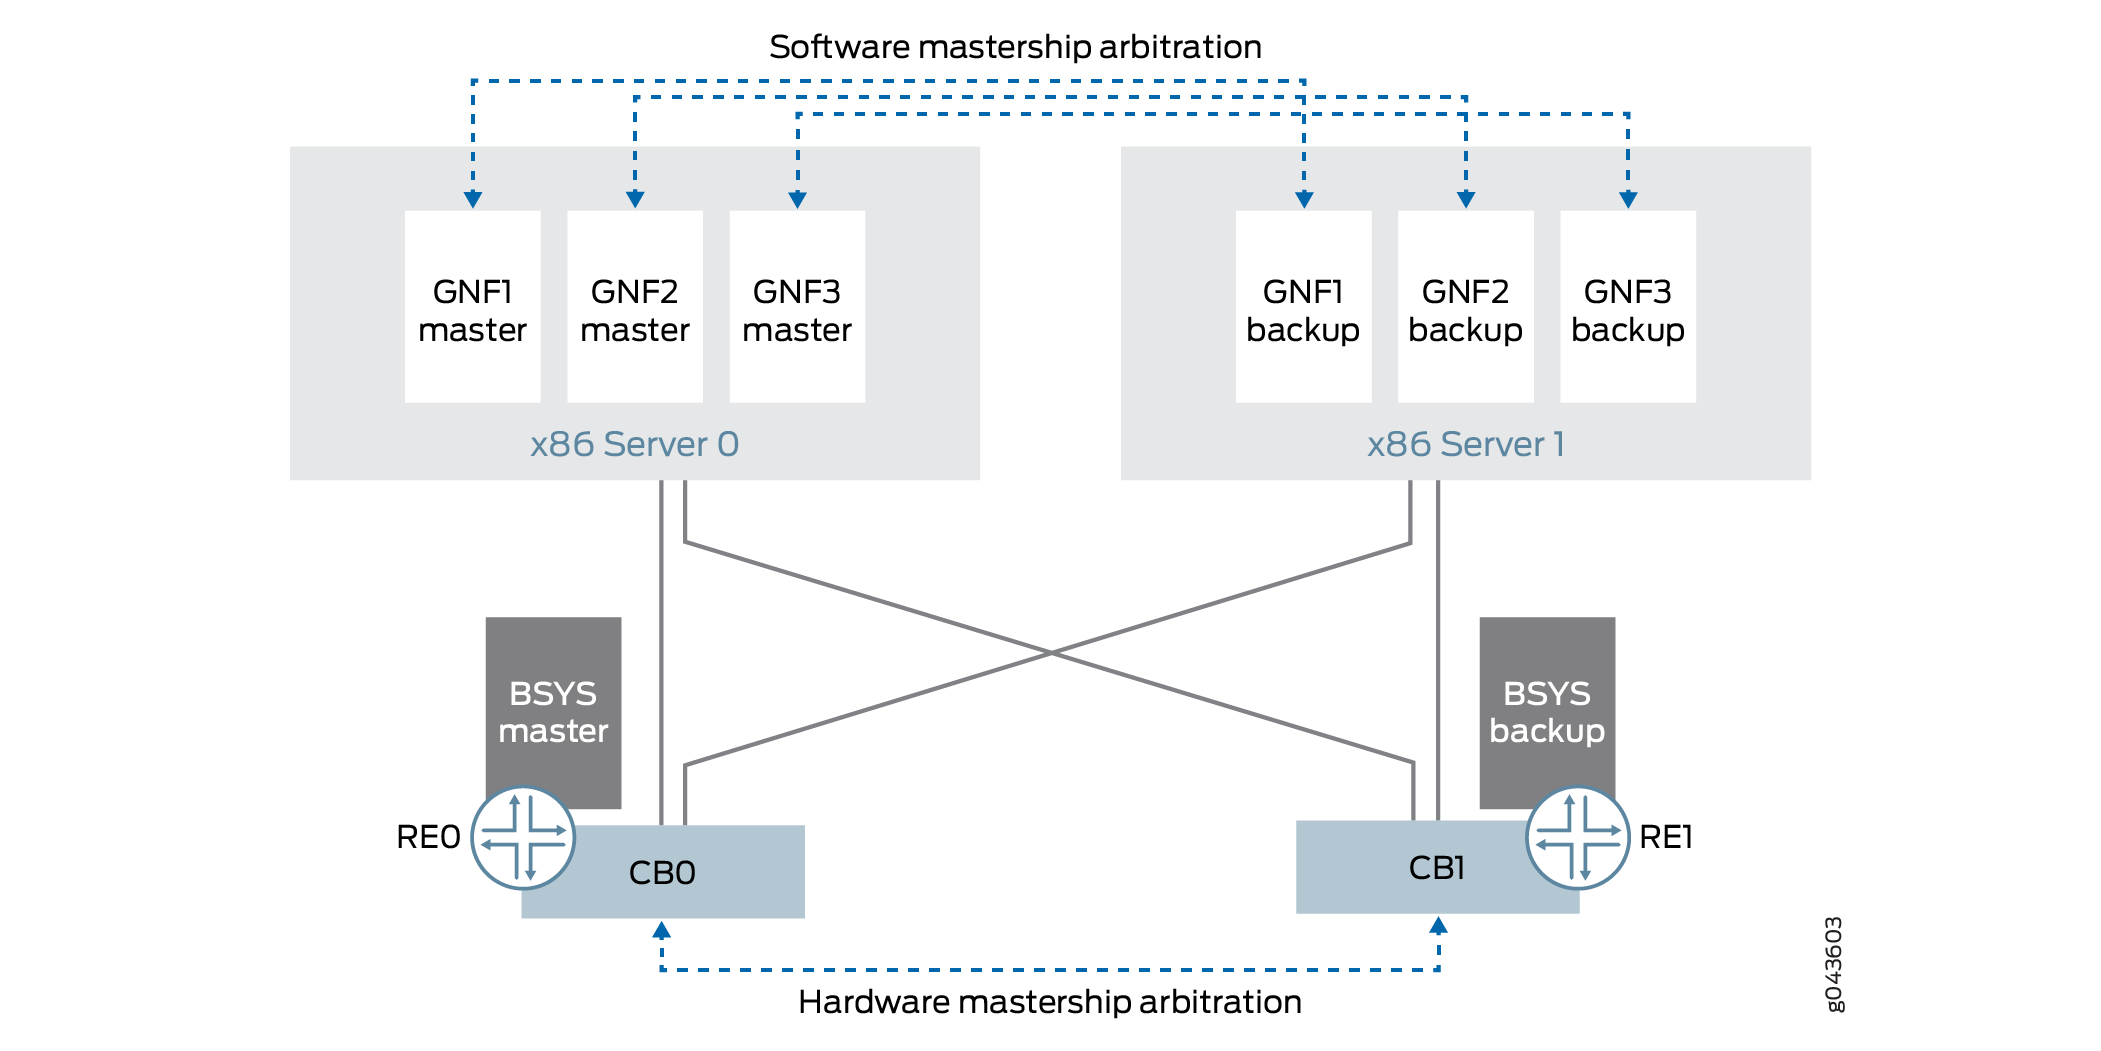 Primary-role Behavior of GNF and BSYS (External Server Model)